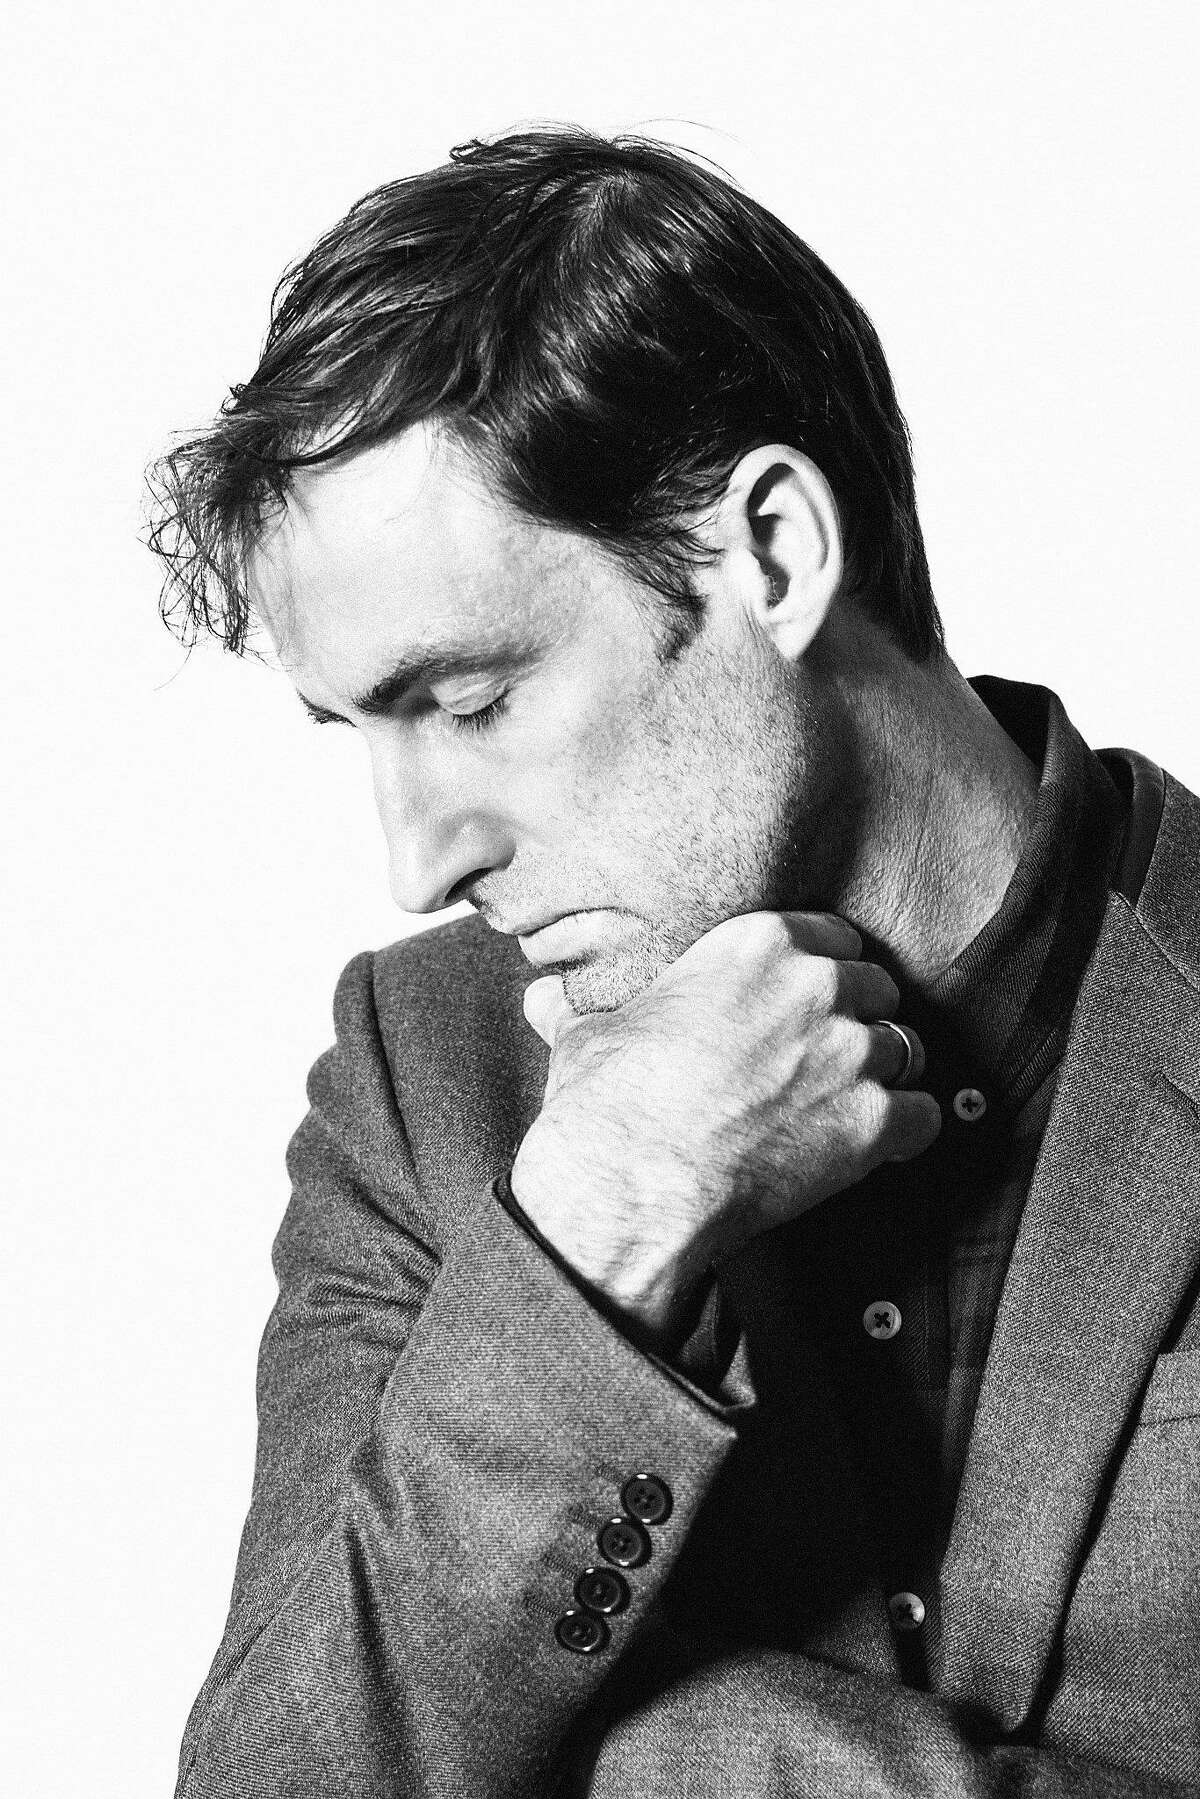 Andrew Bird performs Monday, May 16, at the Masonic in San Francisco.